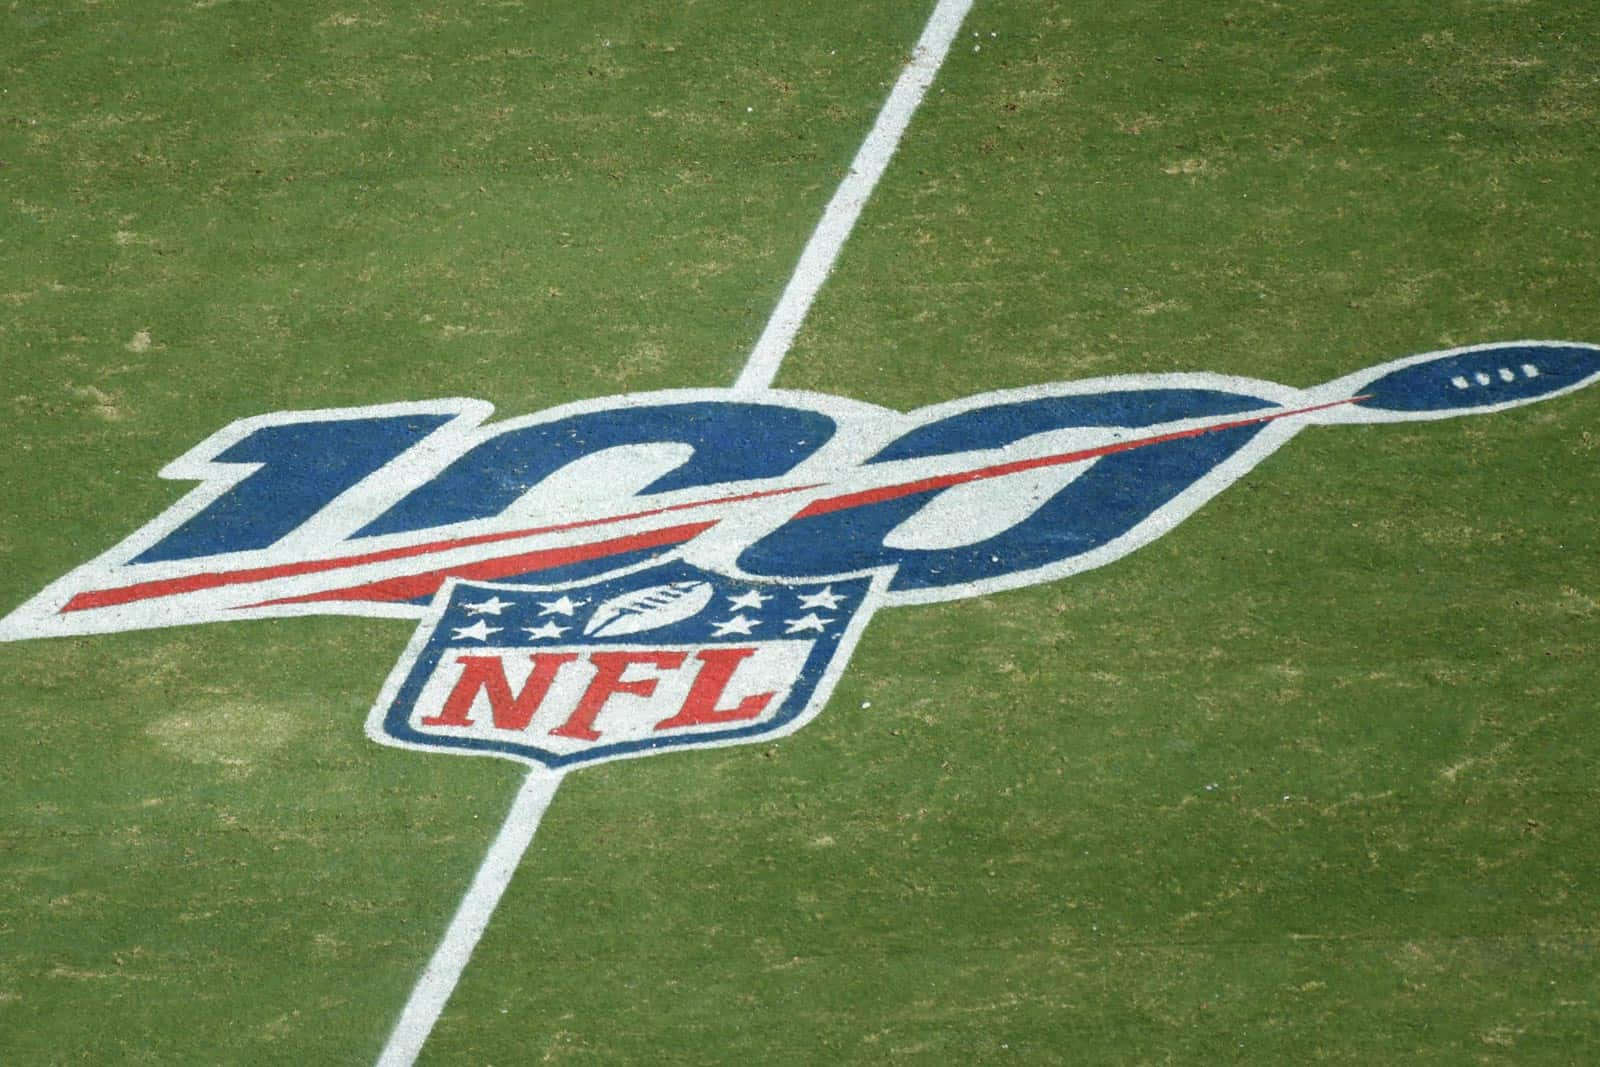 NFL Playoff Schedule 2019-2020